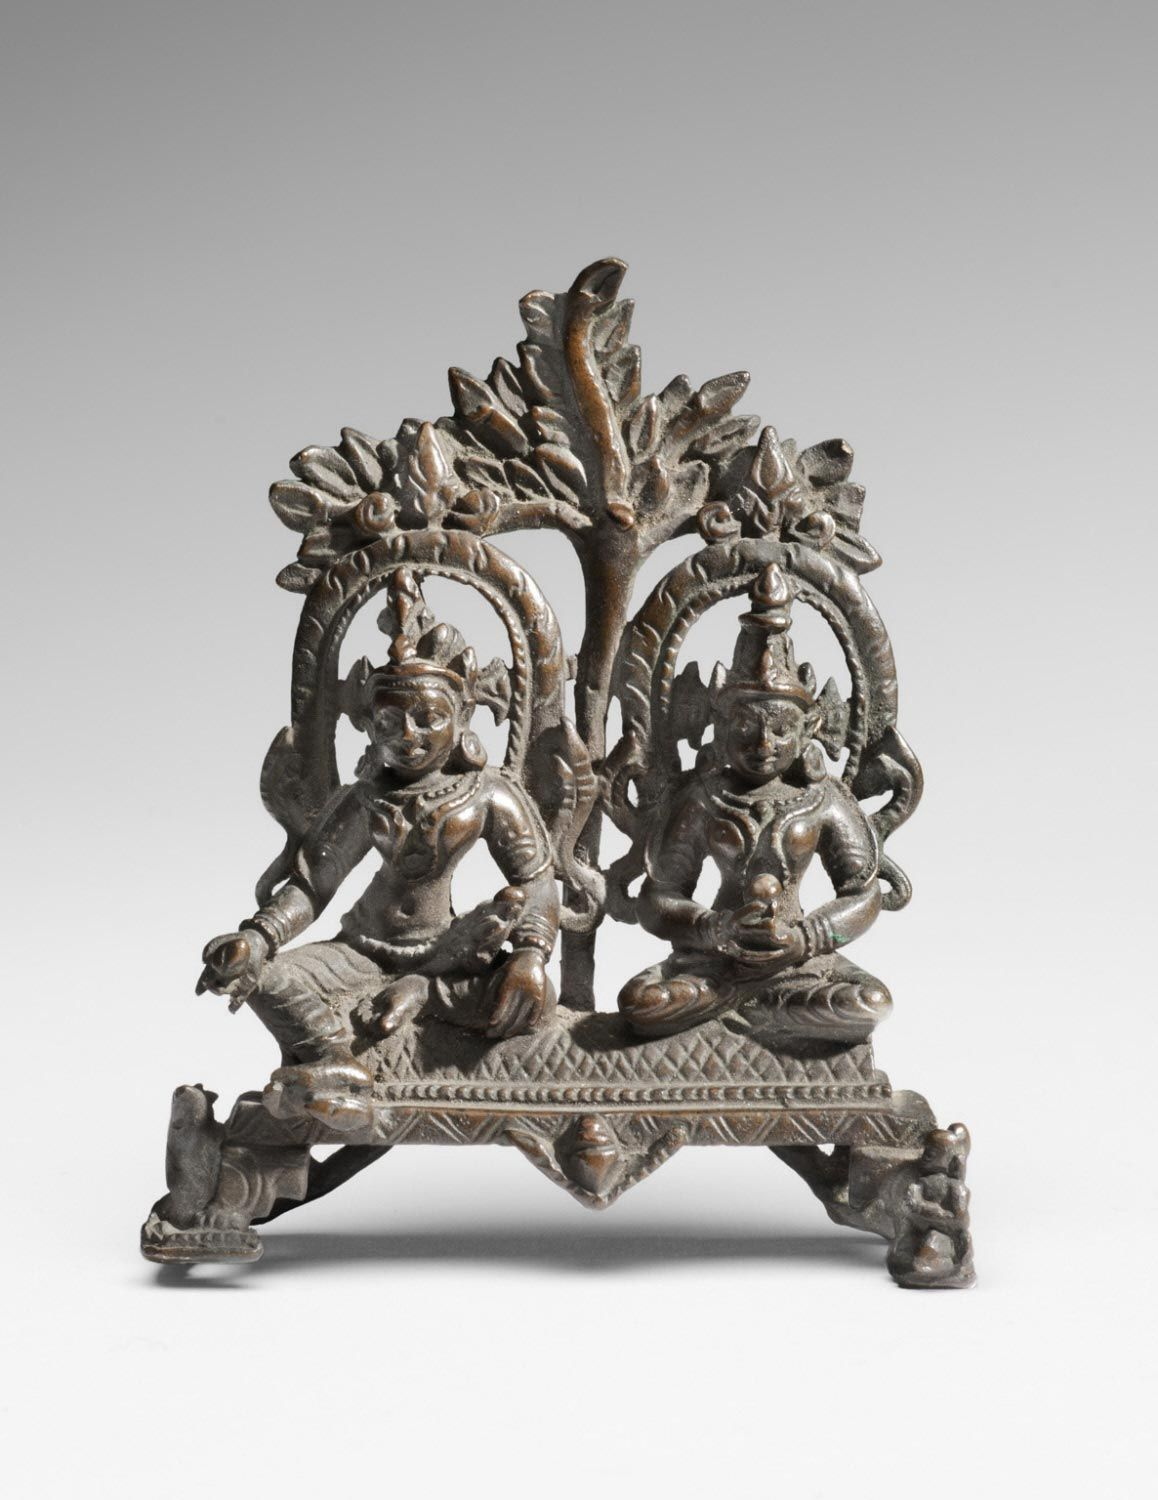 Philadelphia Museum of Art - Collections Object : Gomedha Yaksha and Ambika Yakshi, Attendants of the Jina Neminatha. Geography: Made in Bihar, India, Asia Date: 12th - 13th century Medium: Bronze Dimensions: 3 1/2 x 3 x 1 inches (8.9 x 7.6 x 2.5 cm) Curatorial Department: South Asian Art Object Location: Currently not on view  Accession Number: 1994-148-179 Credit Line: Stella Kramrisch Collection, 1994